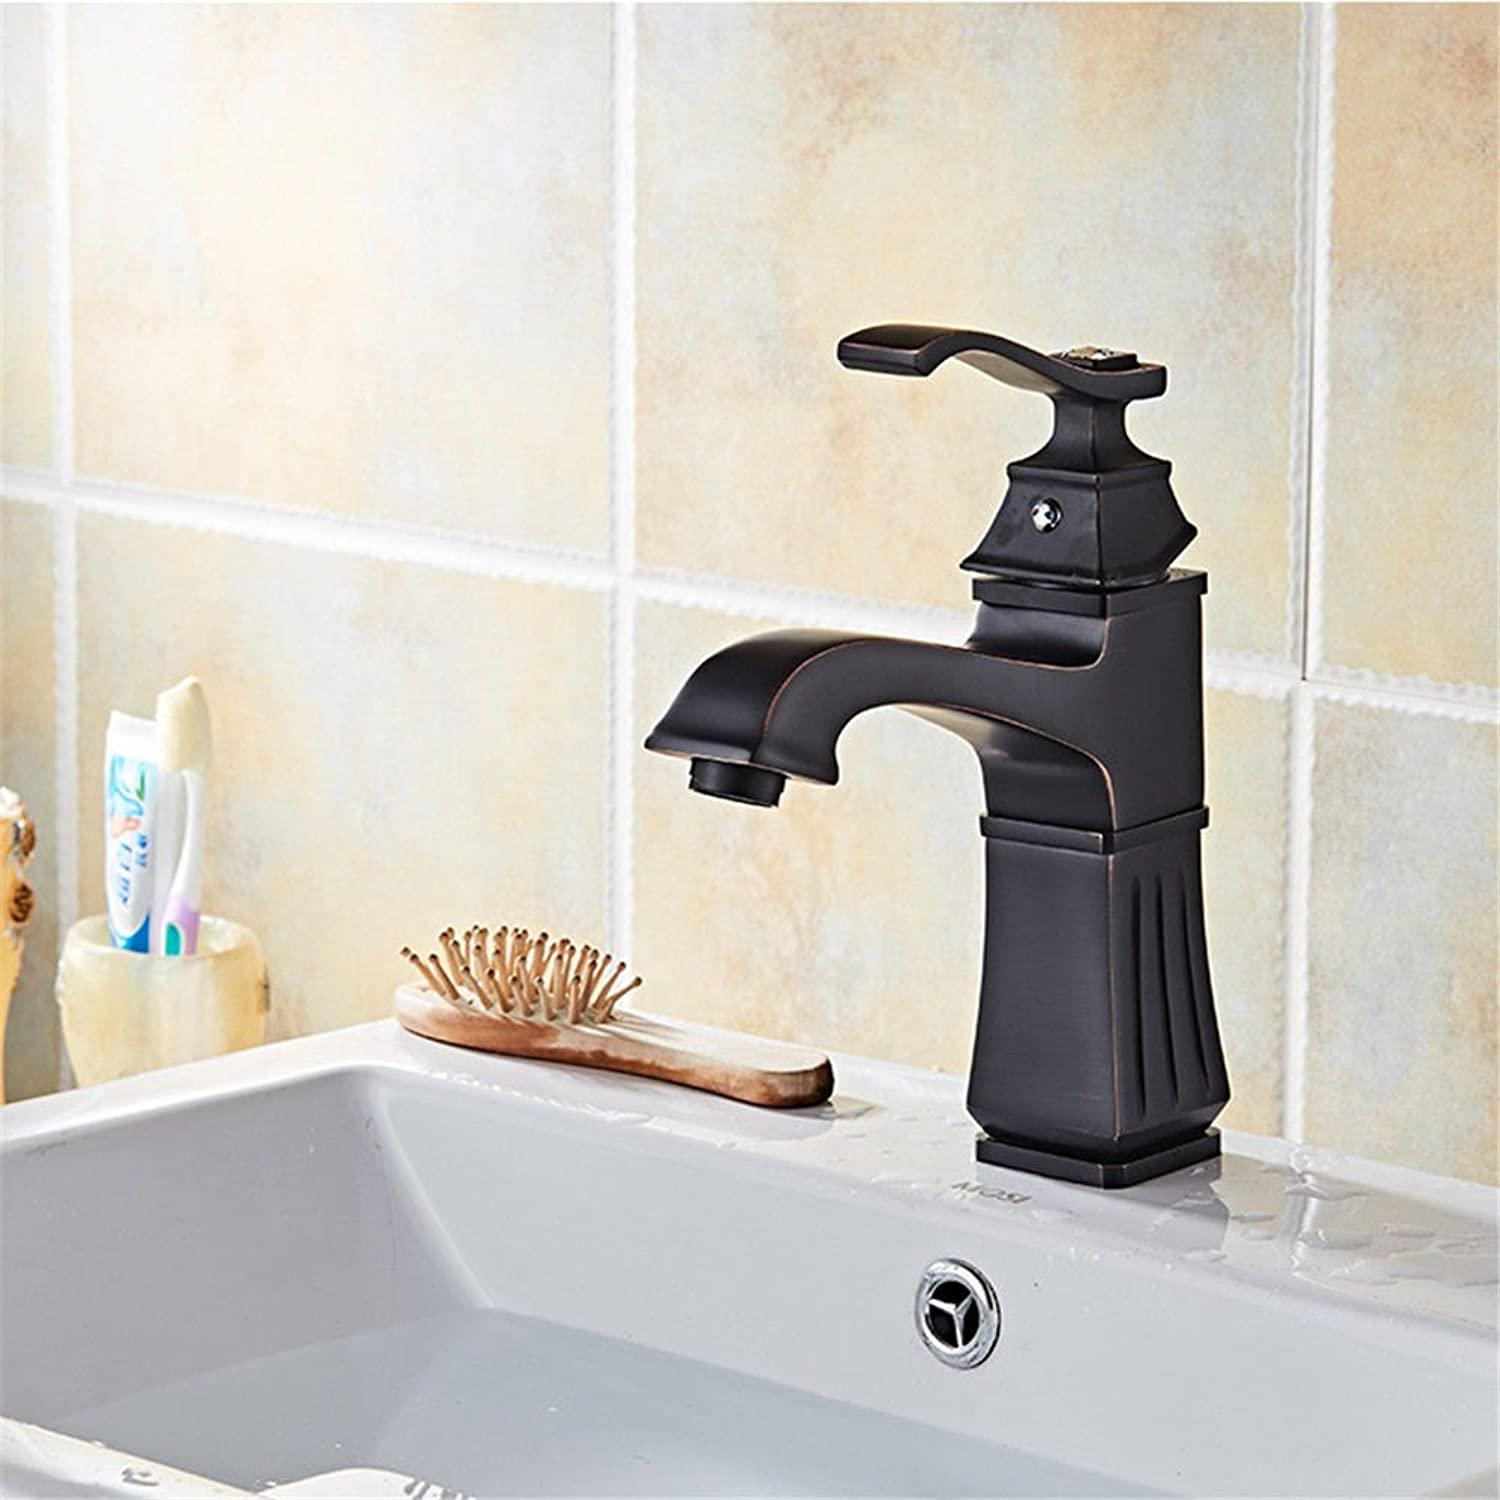 Hlluya Professional Sink Mixer Tap Kitchen Faucet Metal sitting in line faucet antique basin faucet off Kai-style wash basins taps,